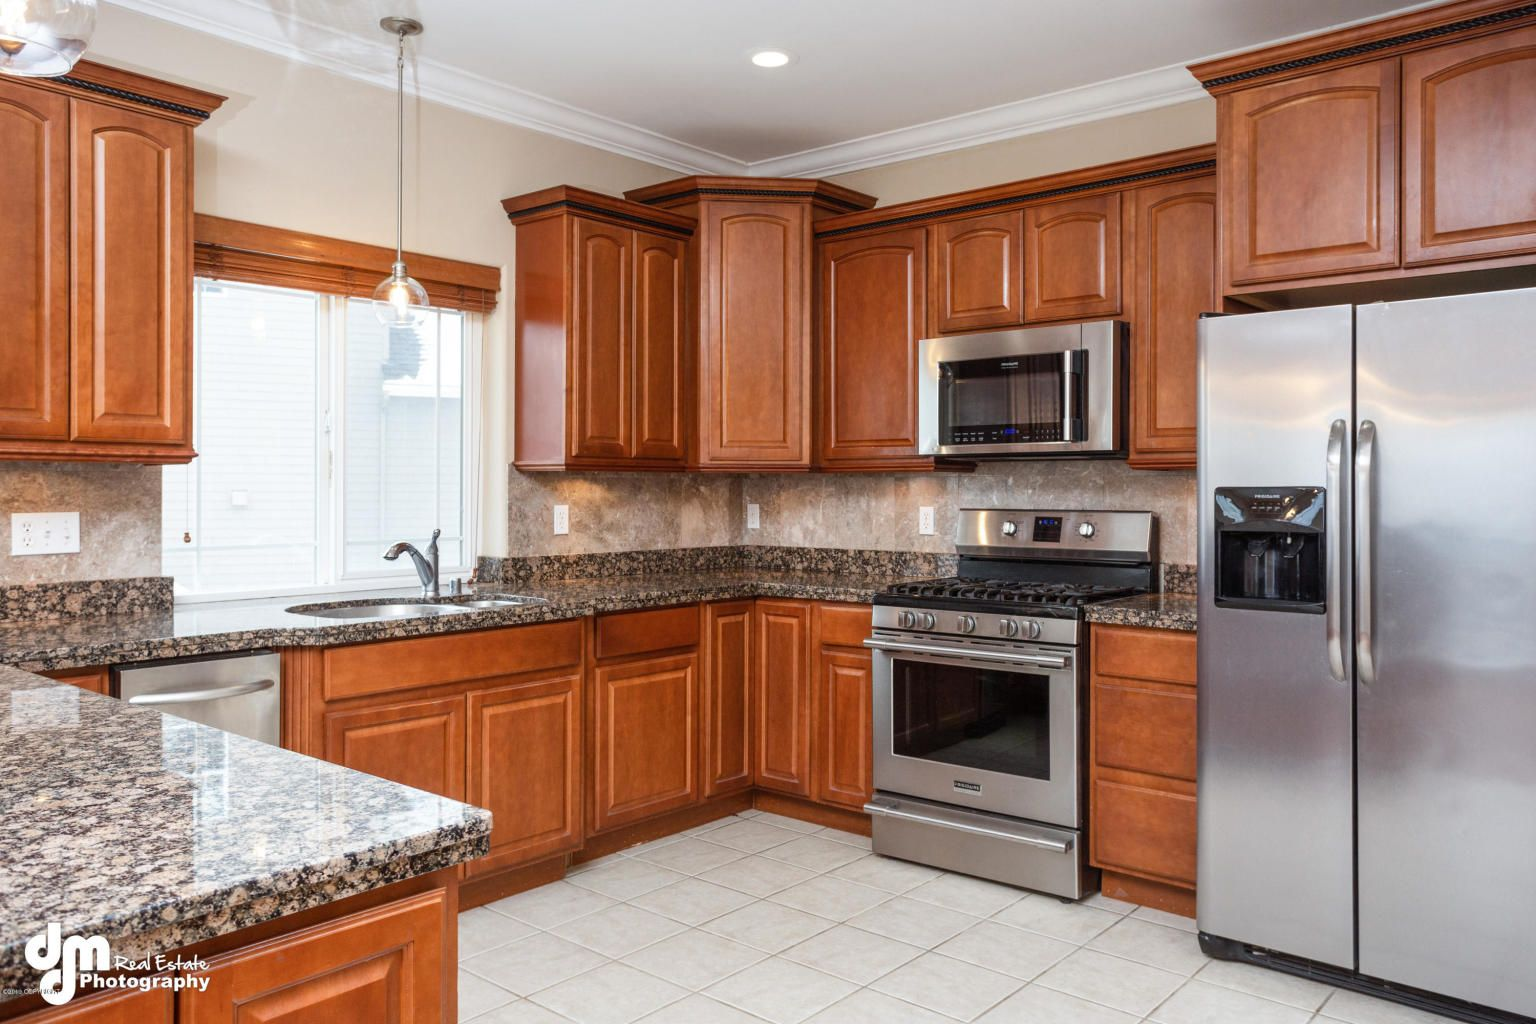 Spacious Gorgeous Home In Goldenview Park 5 Bed 4 Bath With 3 Car Garage Over 4 000 Square Feet Of Beautiful Li Home Acacia Wood Flooring Large Homes